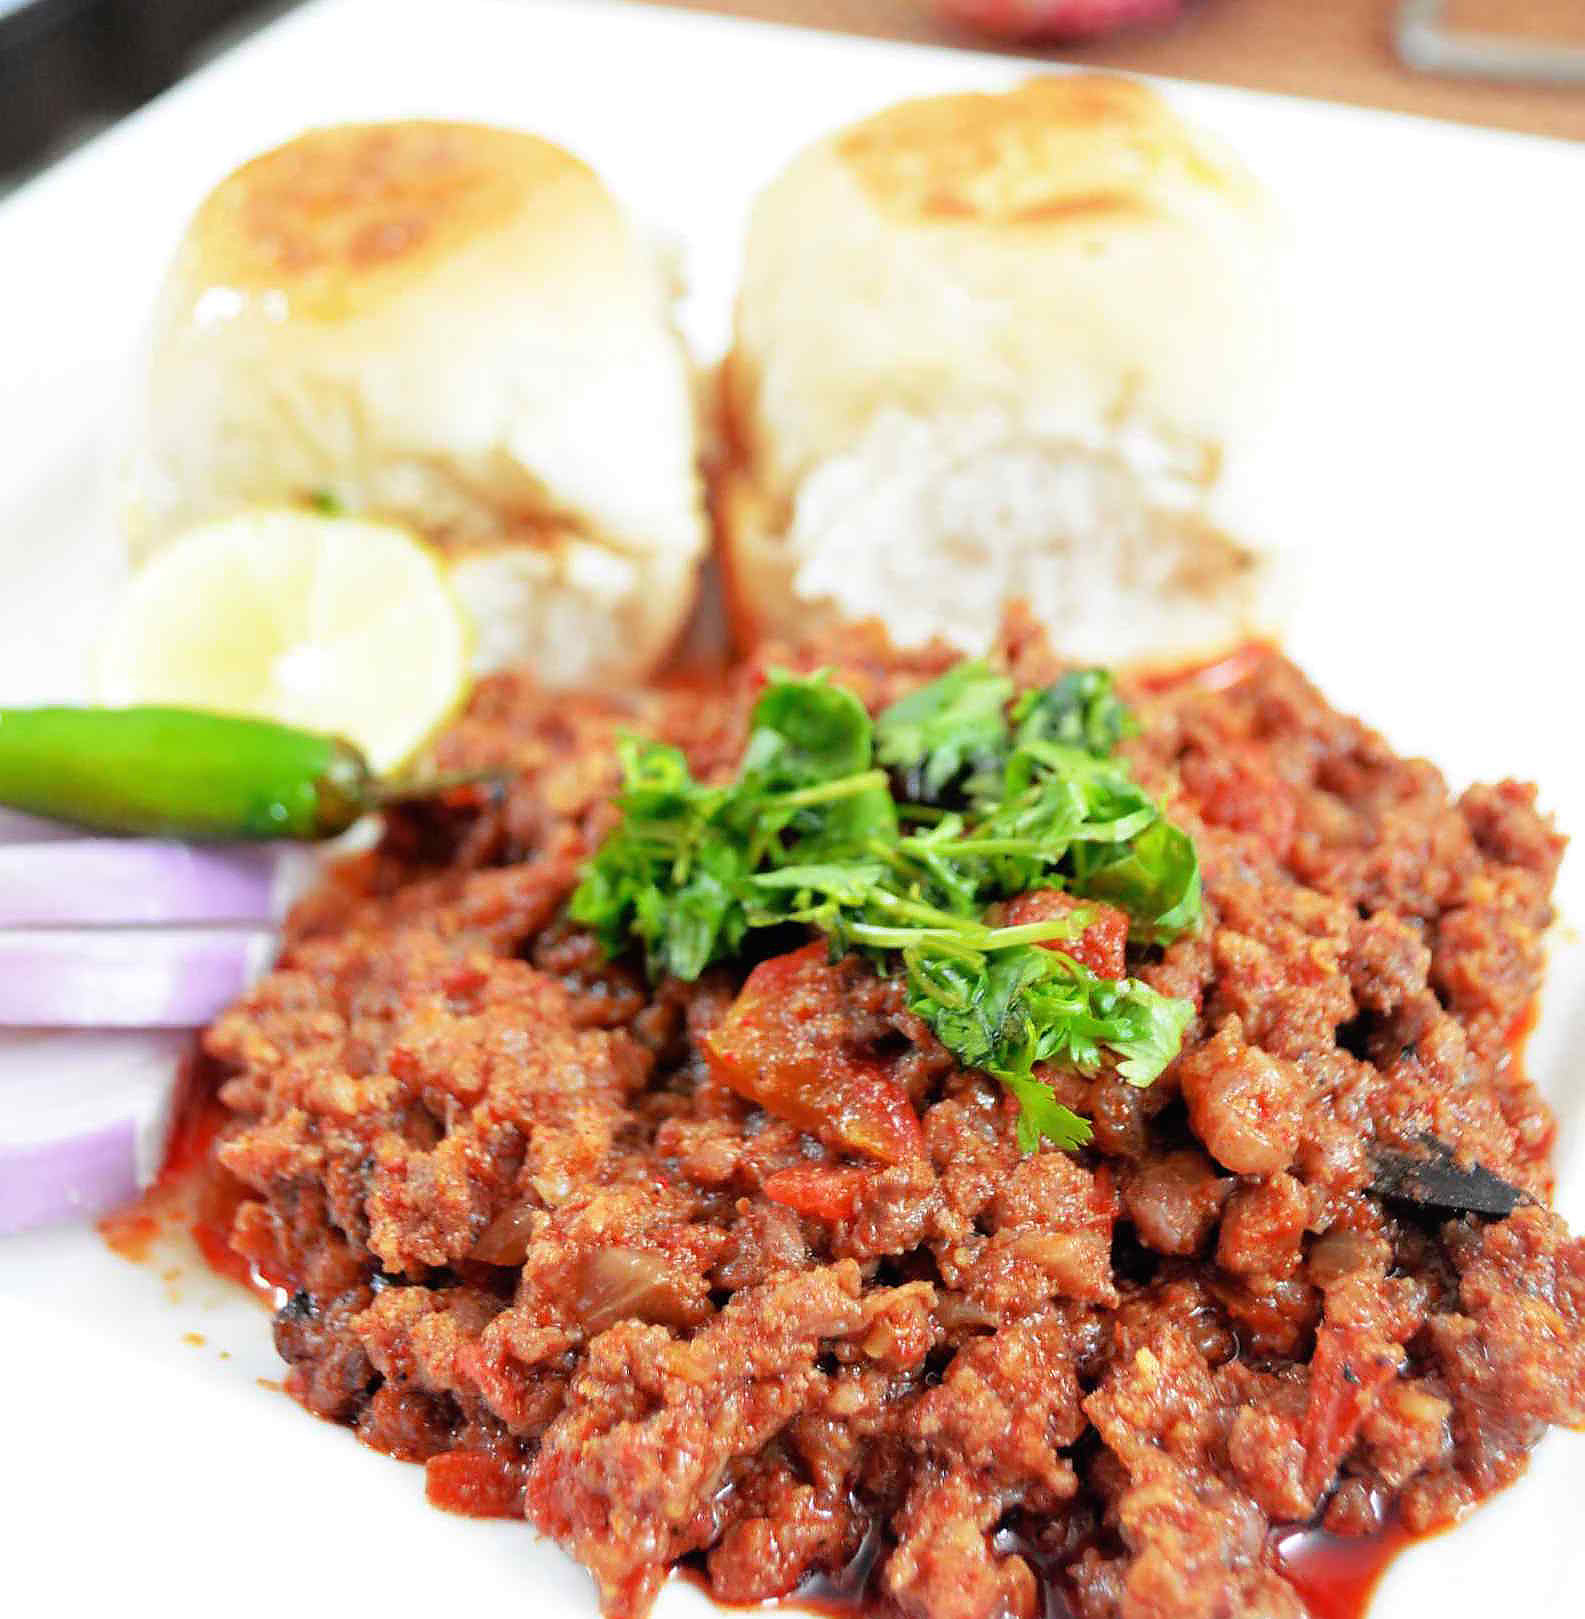 Mutton keema recipe by archanas kitchen mutton keema recipe forumfinder Gallery